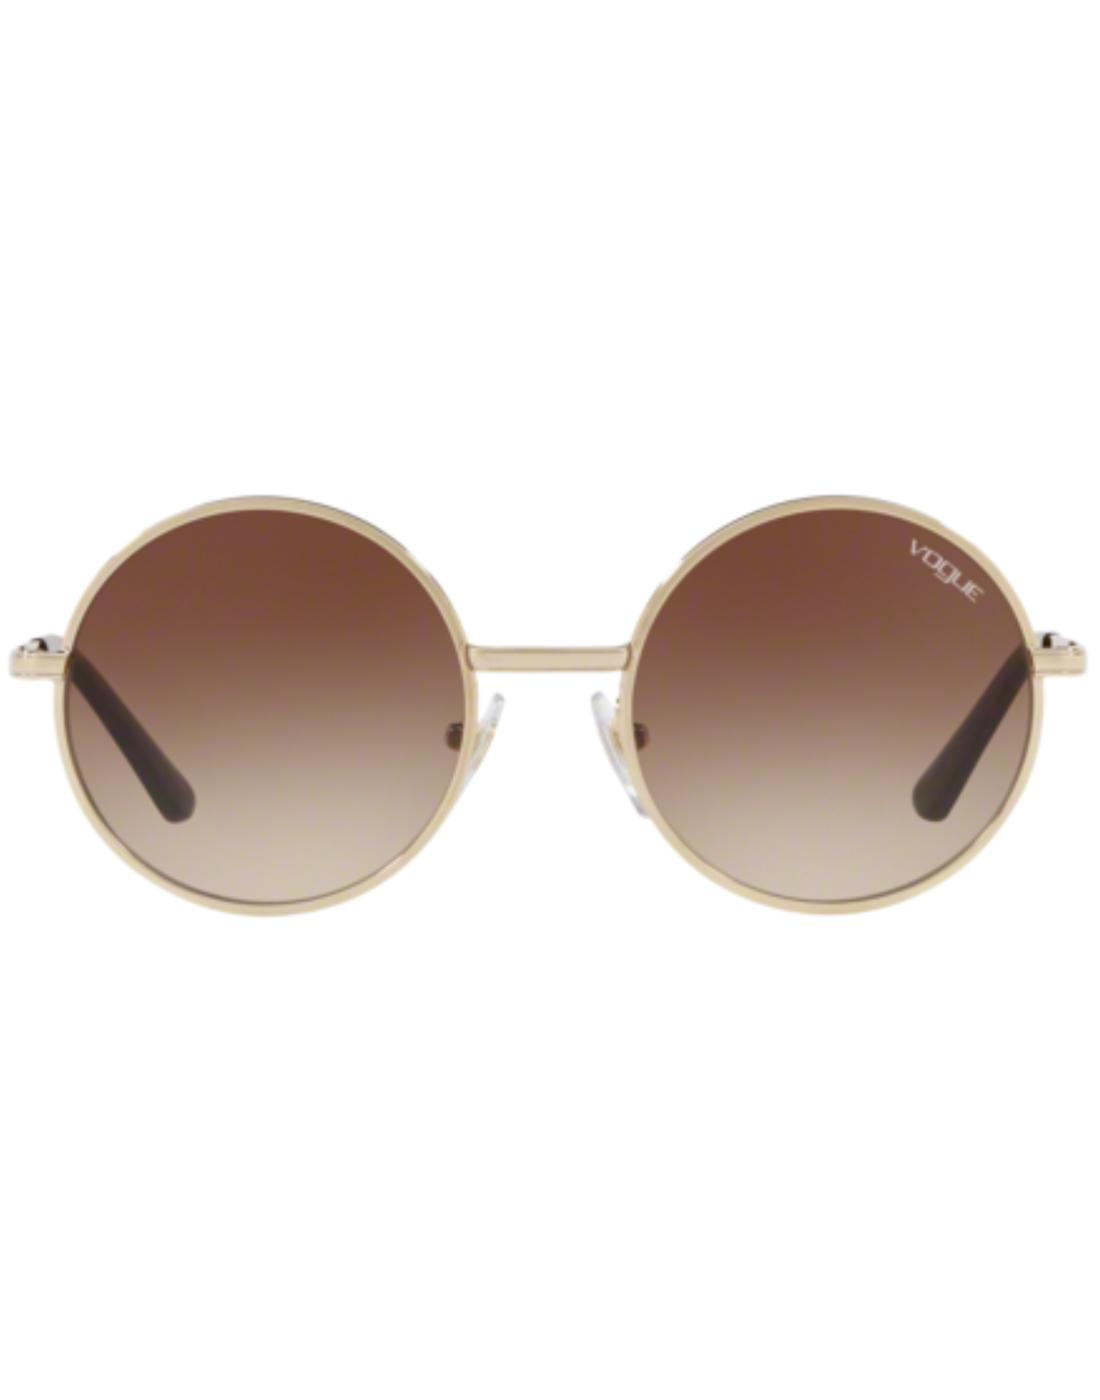 VOGUE Gigi Hadid Retro 60s Vintage Sunglasses B